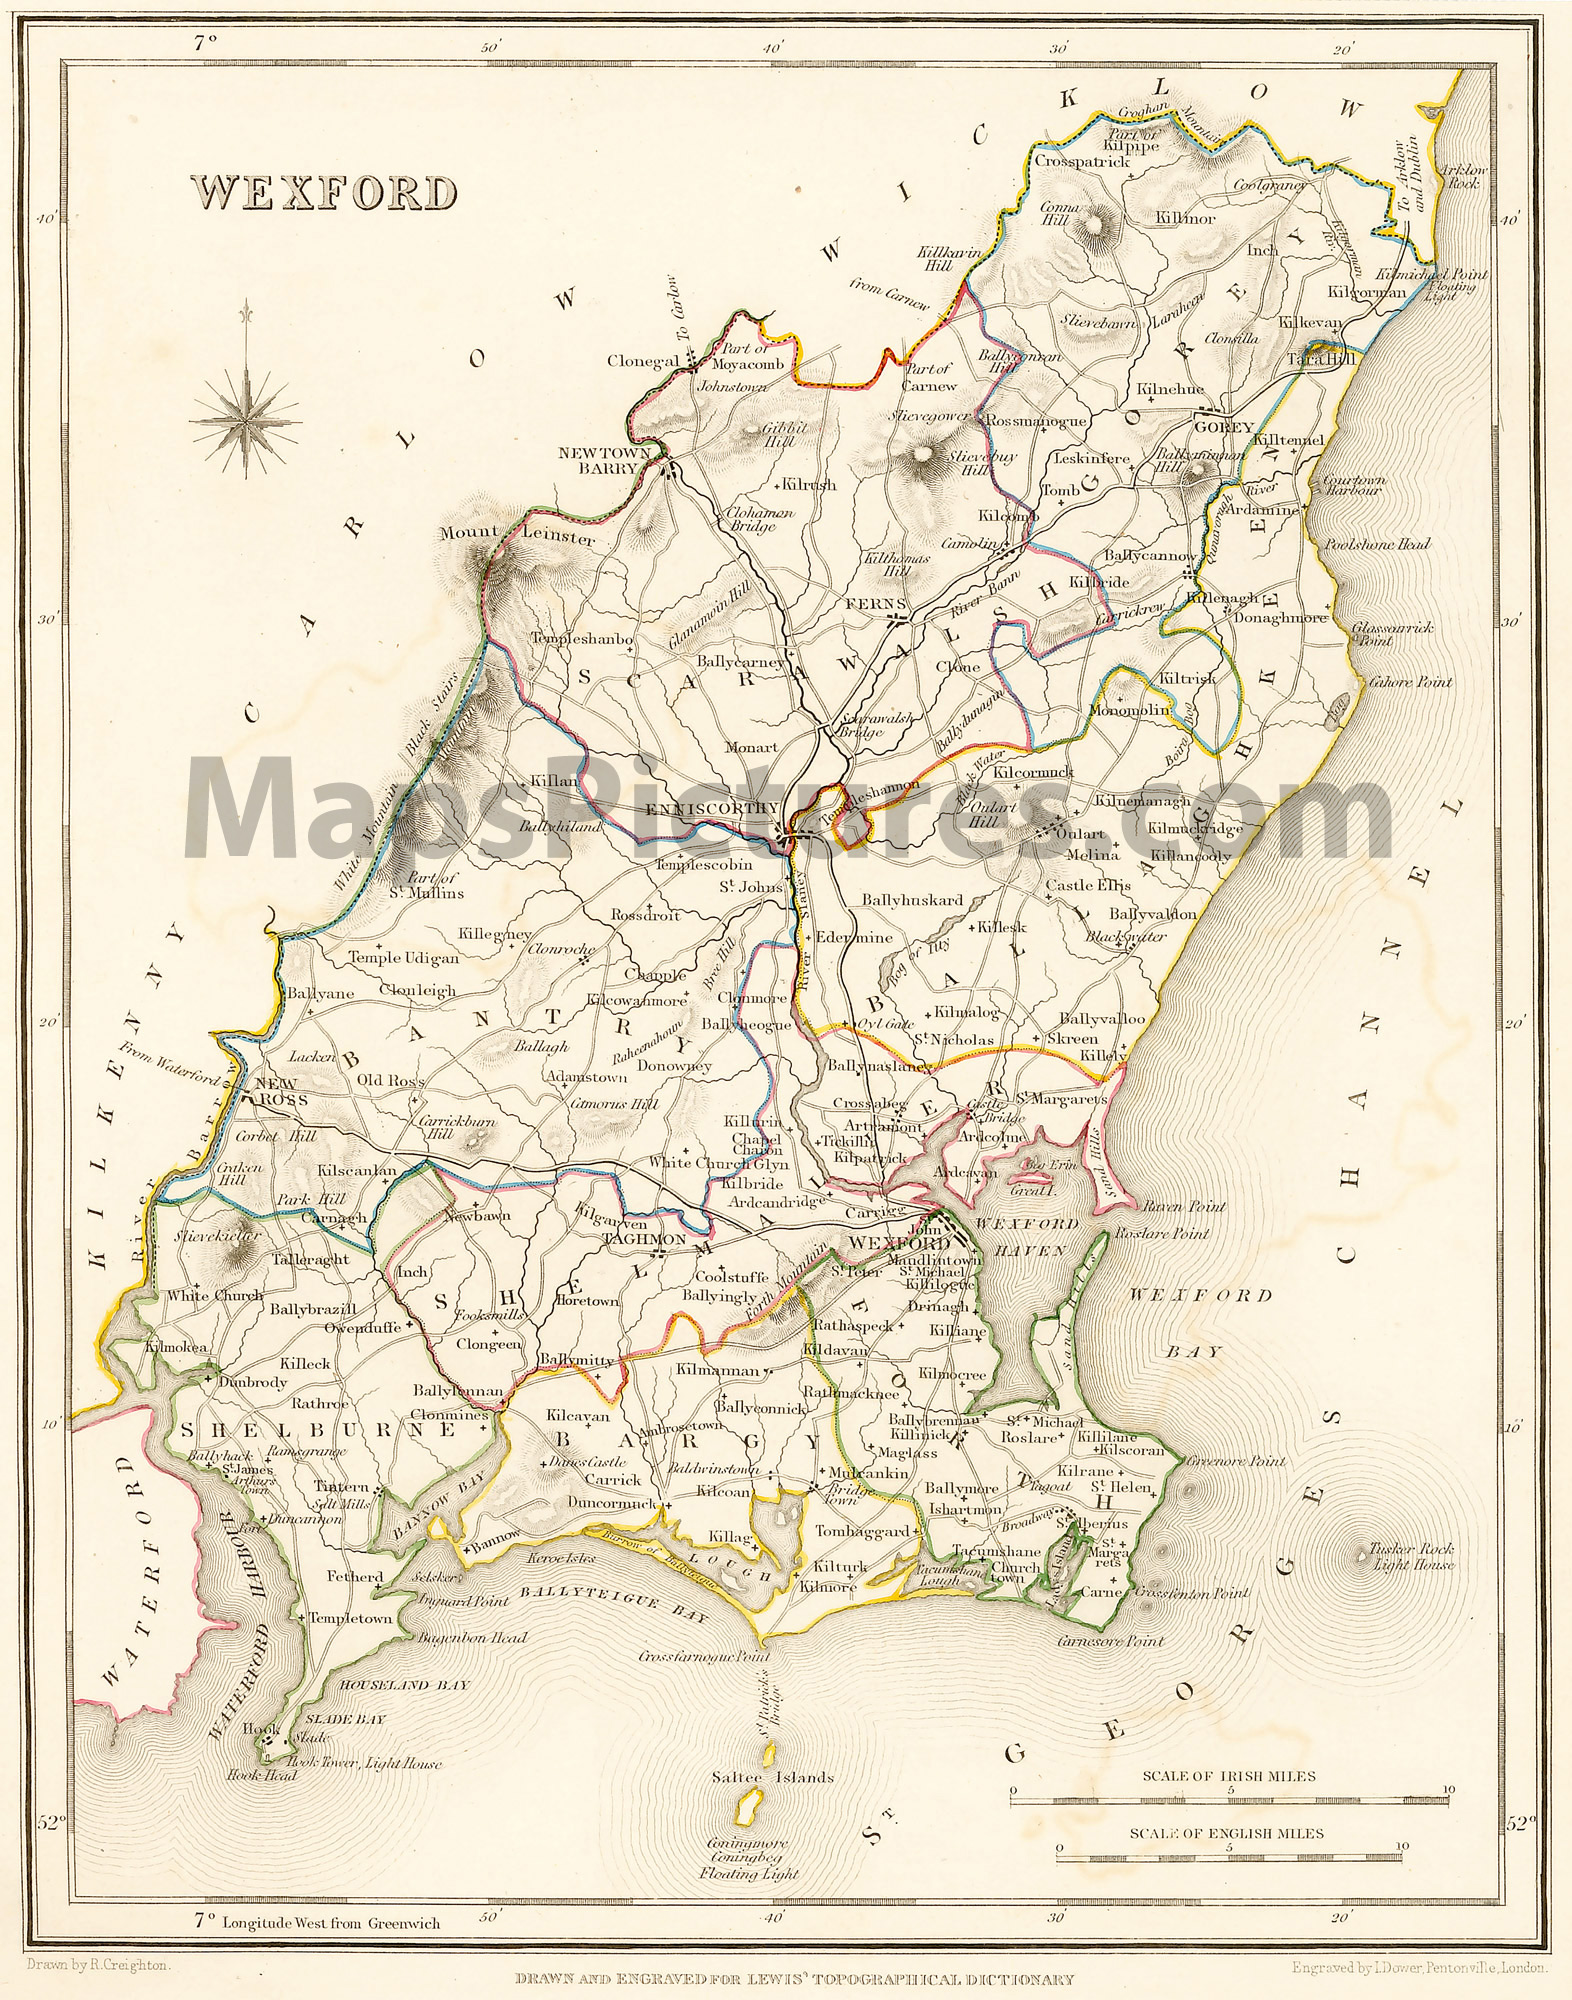 Map Of Wexford County Ireland.County Wexford Ireland Map 1837